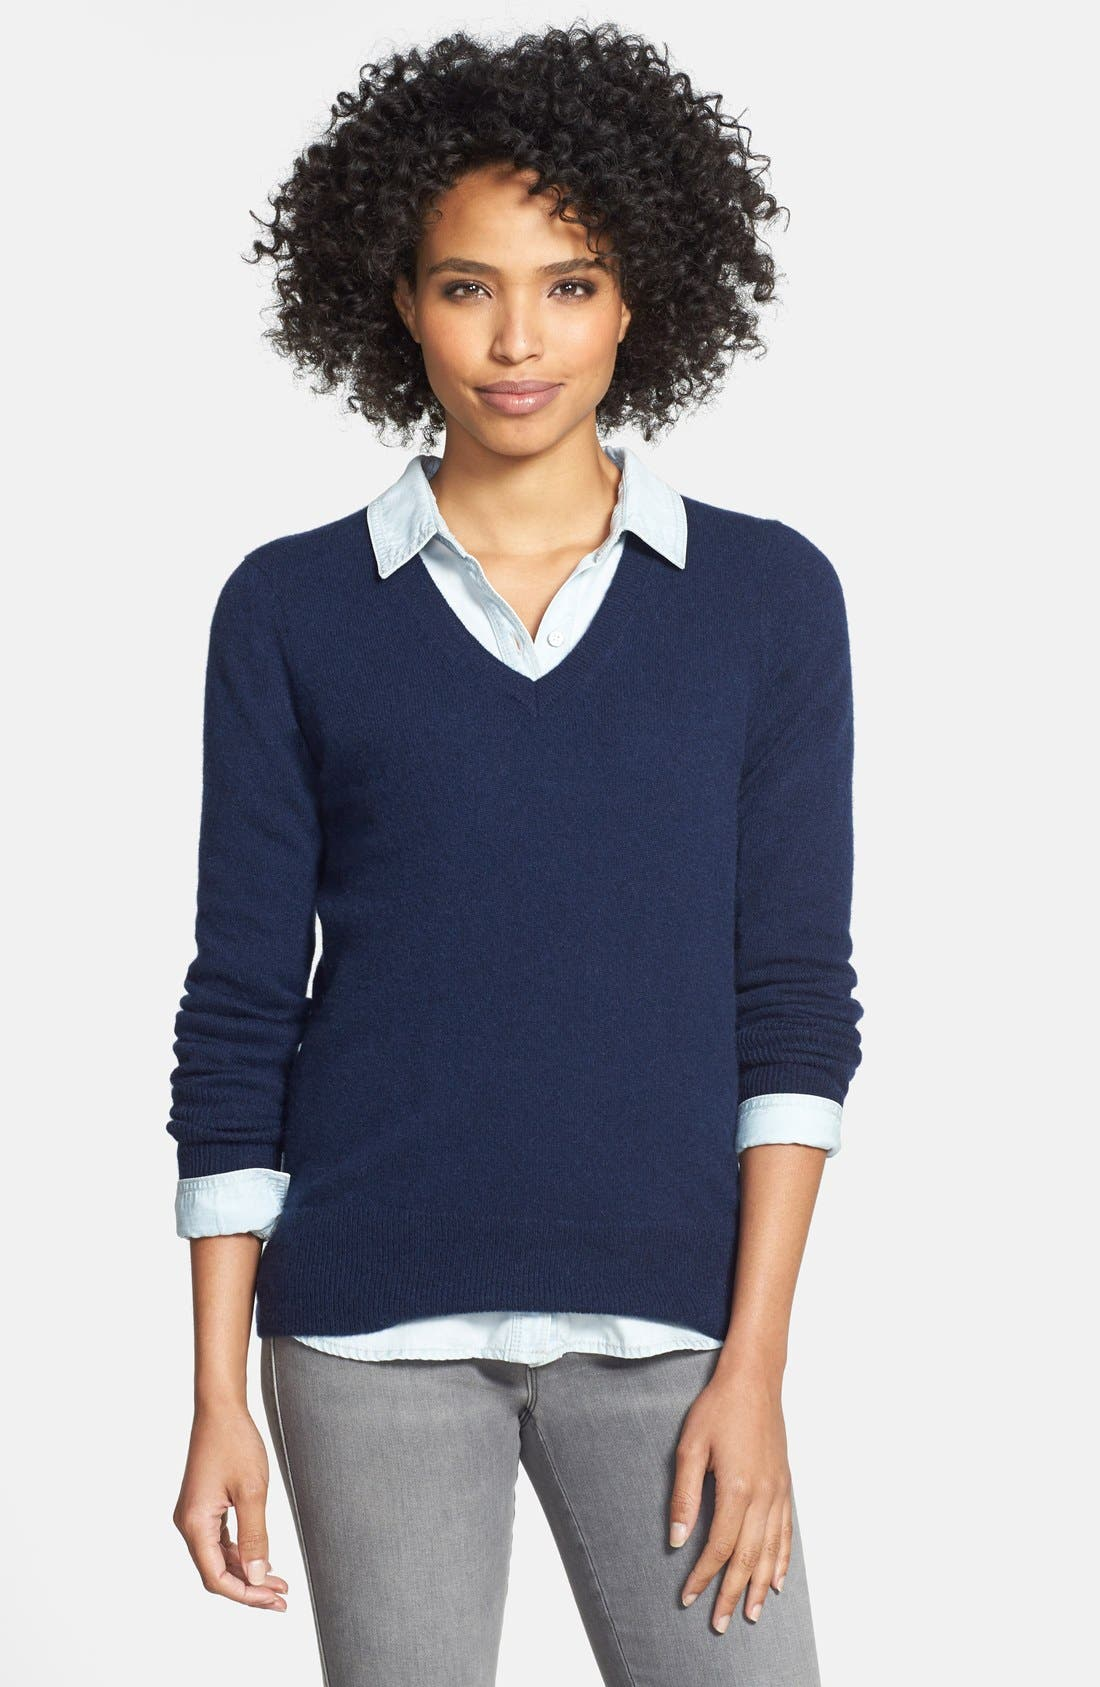 Alternate Image 1 Selected - Halogen® Cashmere V-Neck Sweater (Regular & Petite)